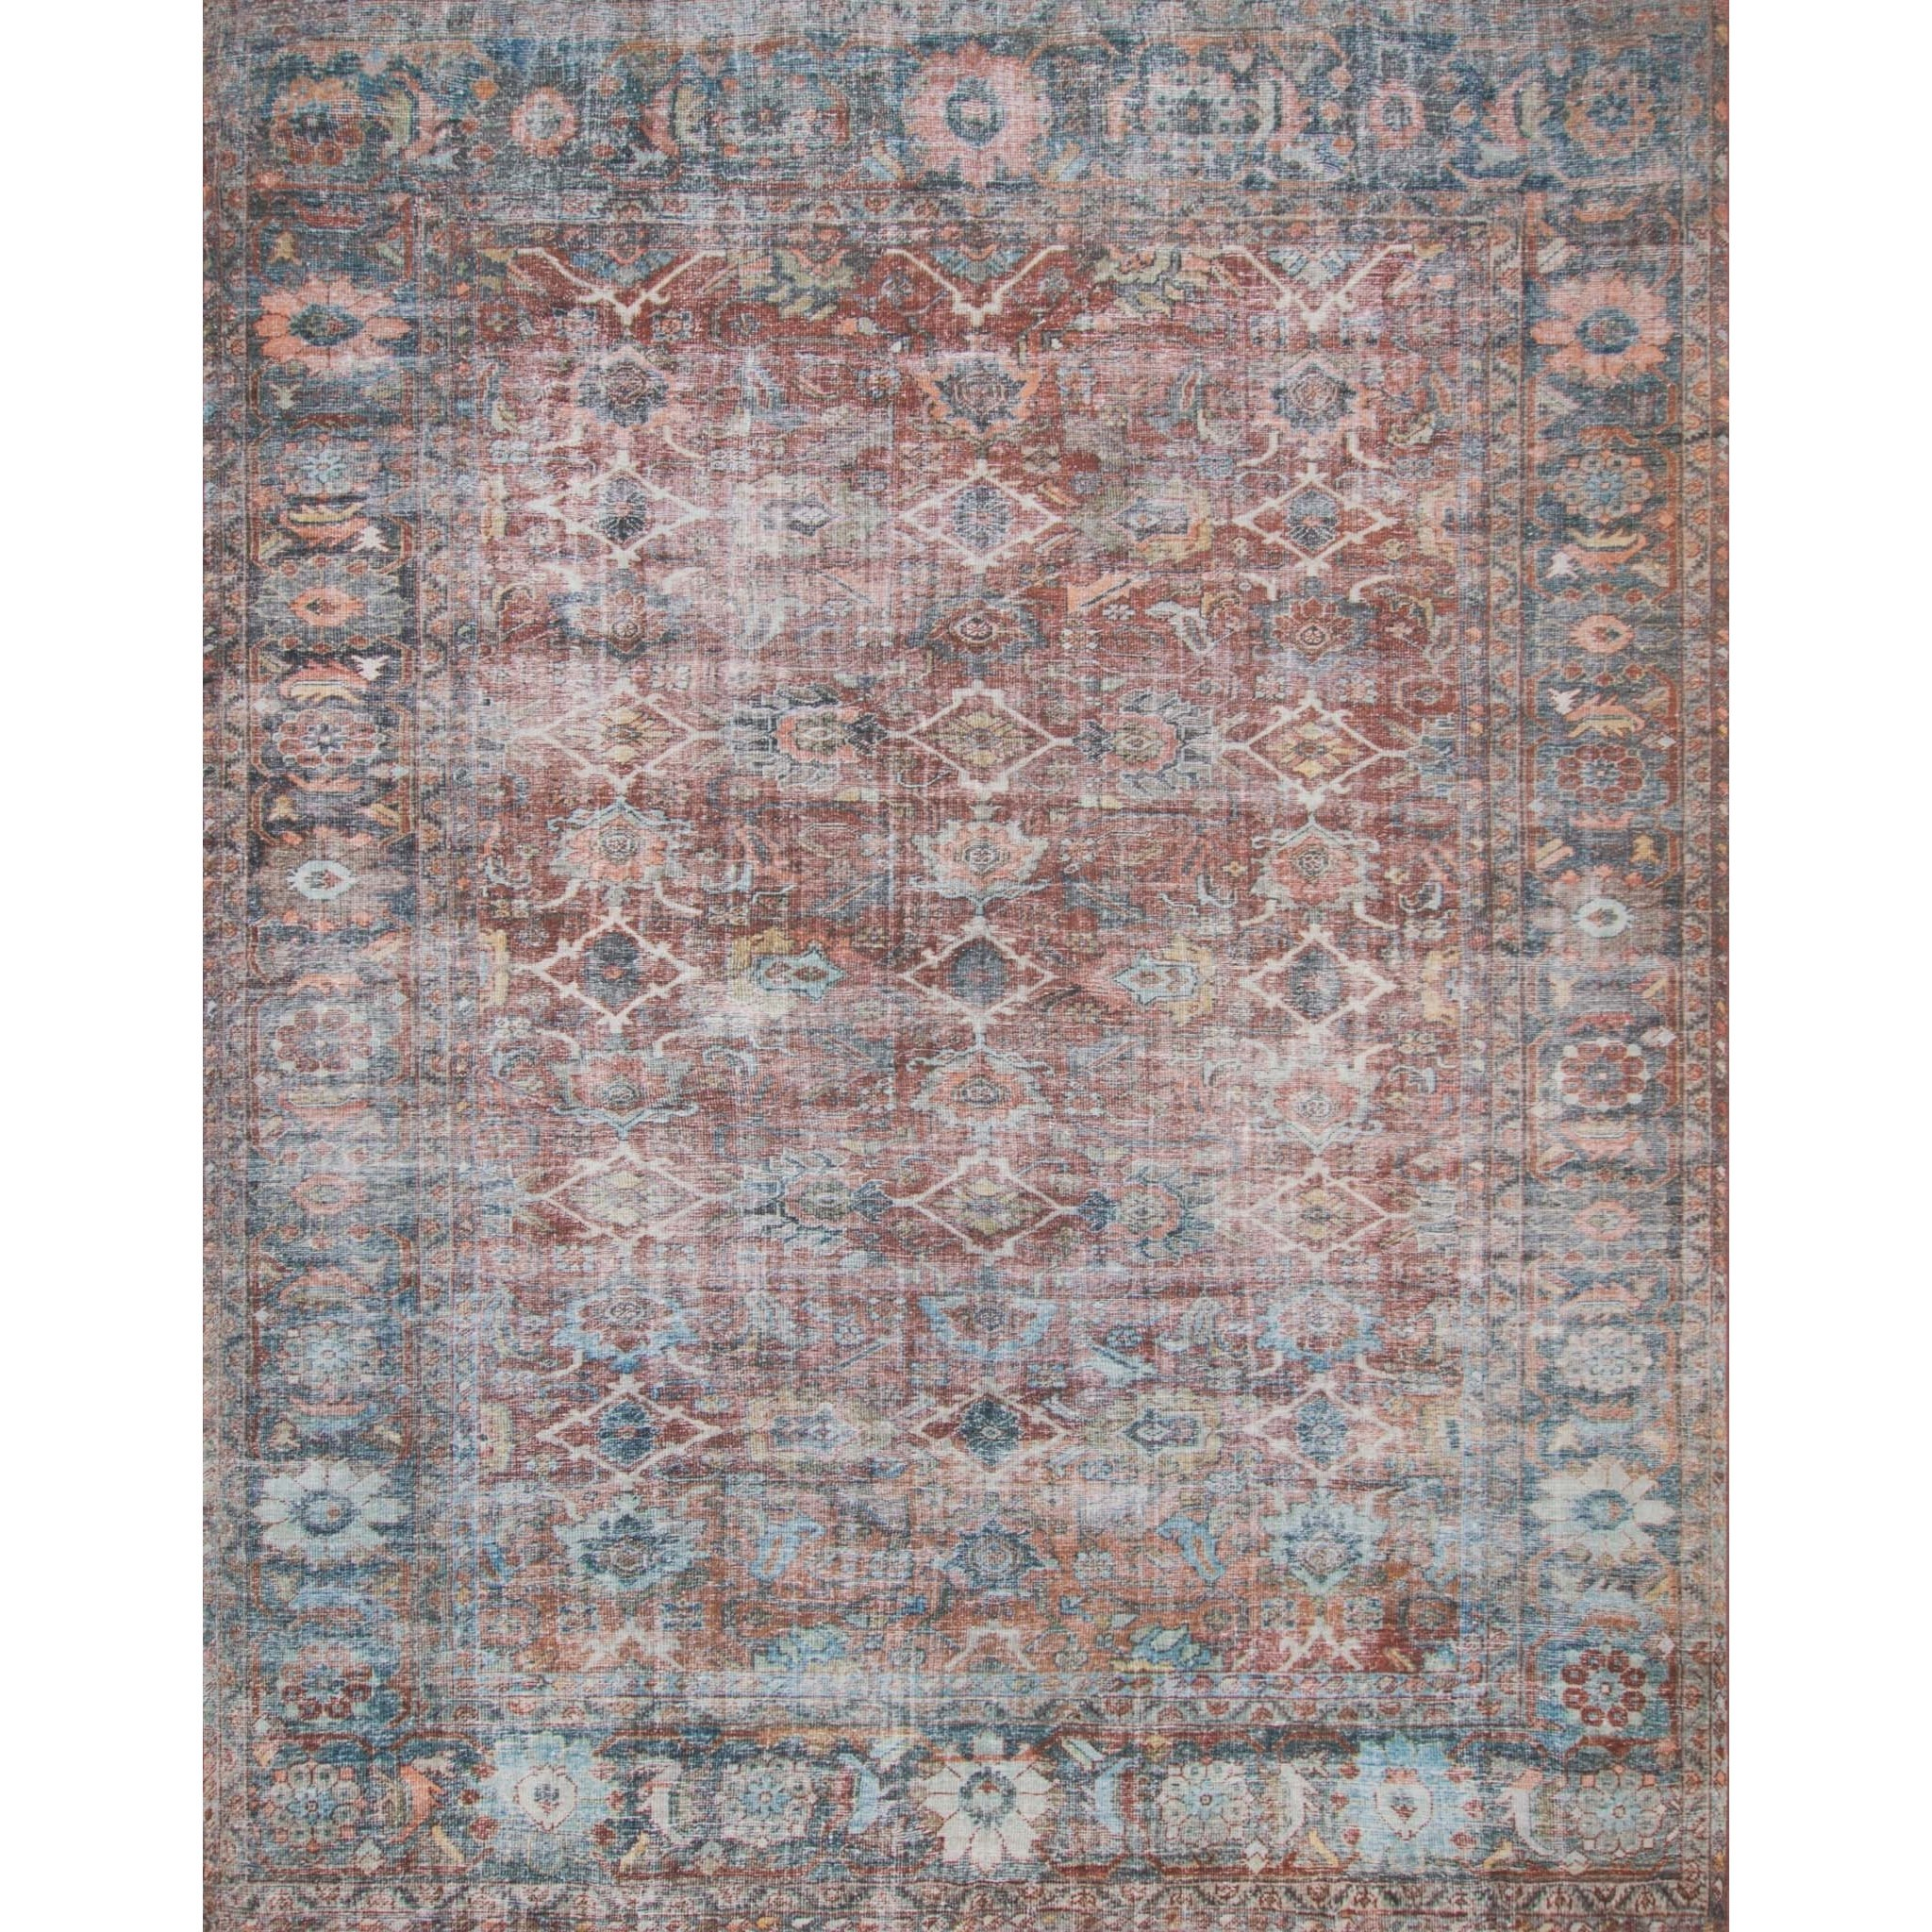 """Lucca 1'-6"""" x 1'-6"""" Square Rug by Magnolia Home by Joanna Gaines for Loloi at Belfort Furniture"""